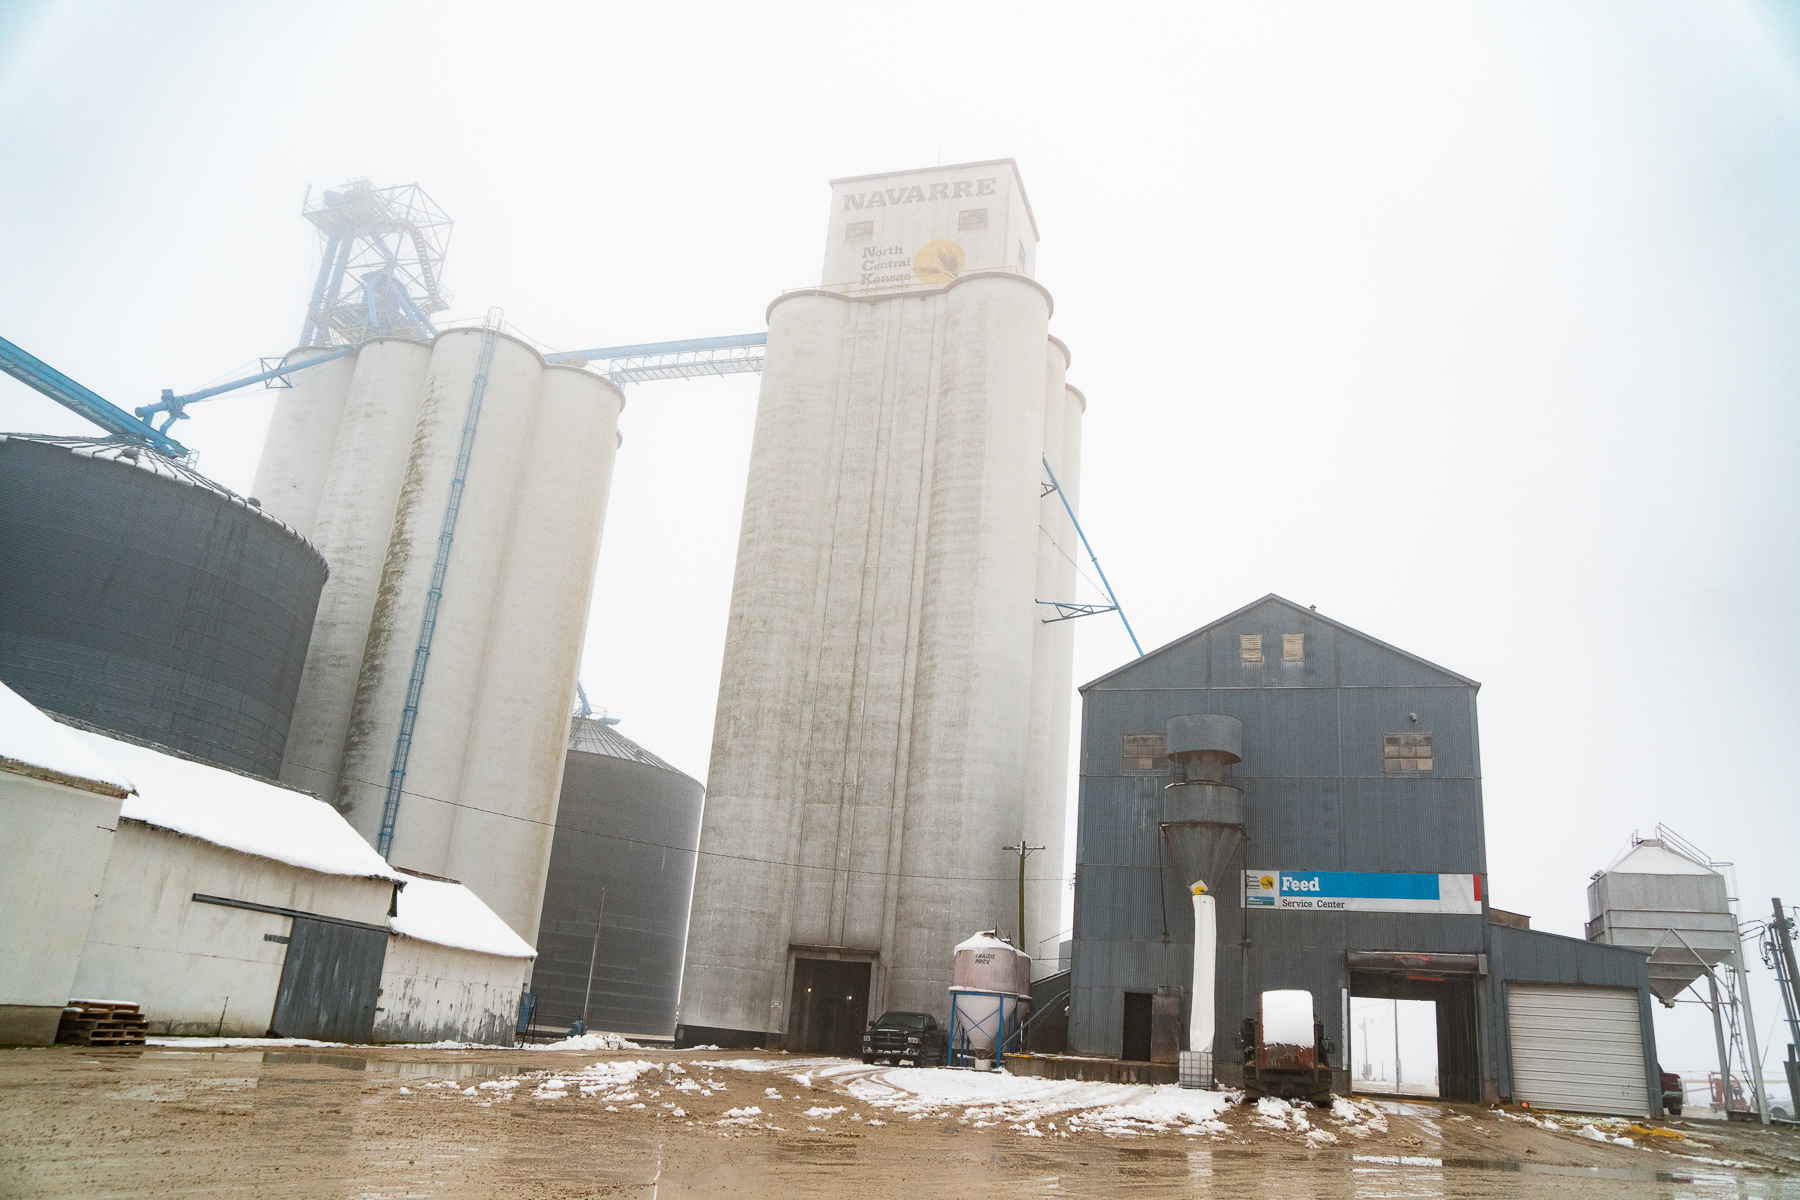 The grain elevator in Navarre, part of Agri Trails Cooperative, where Casey Shardein worked in the grain mill (right), in January 2019.